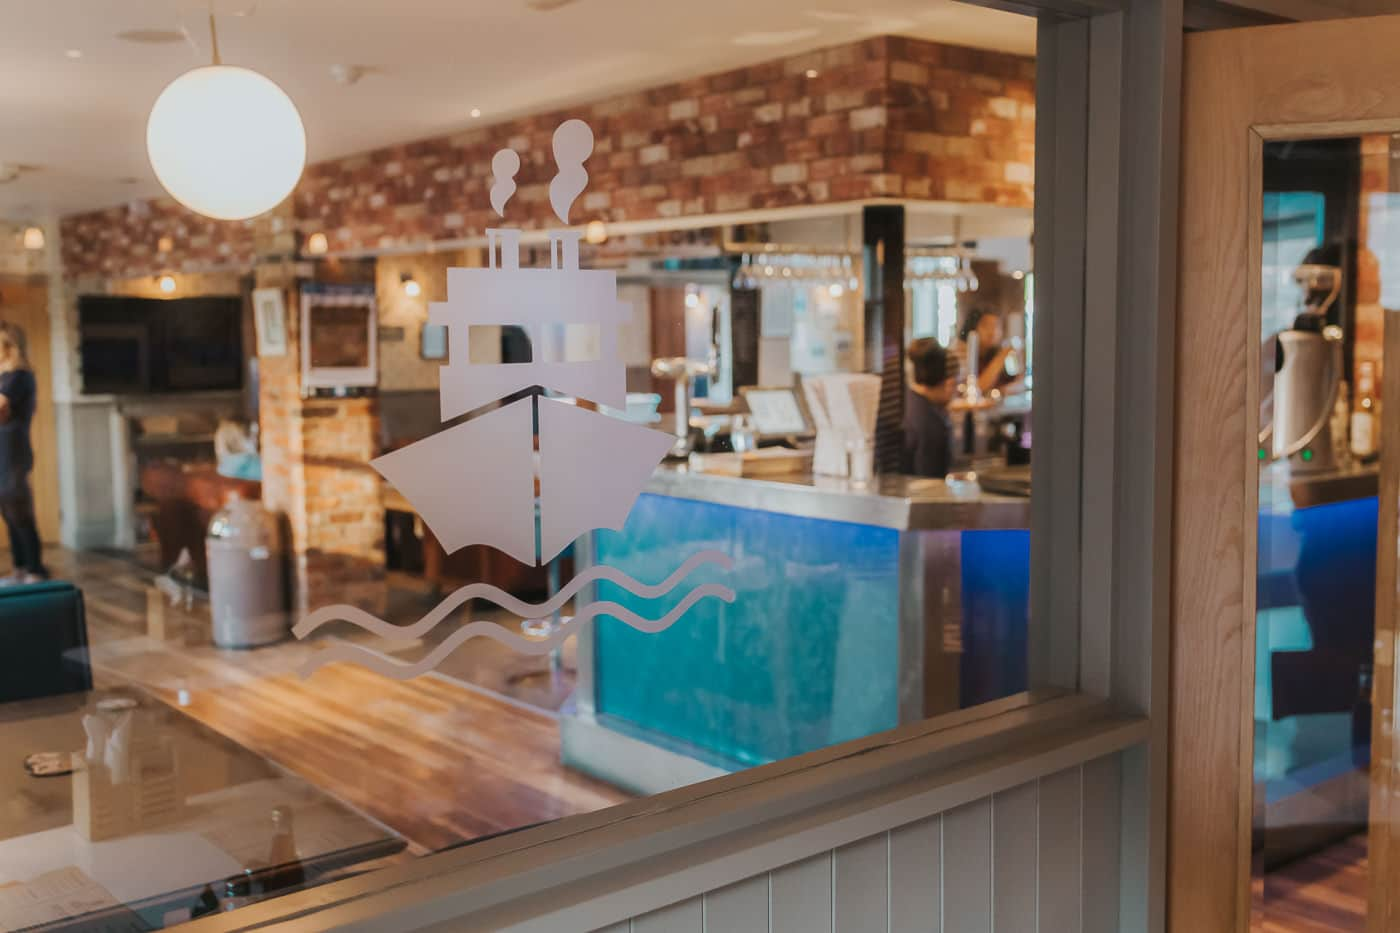 Logo of a fish and chip restaurant etched onto a window with a bar behind it